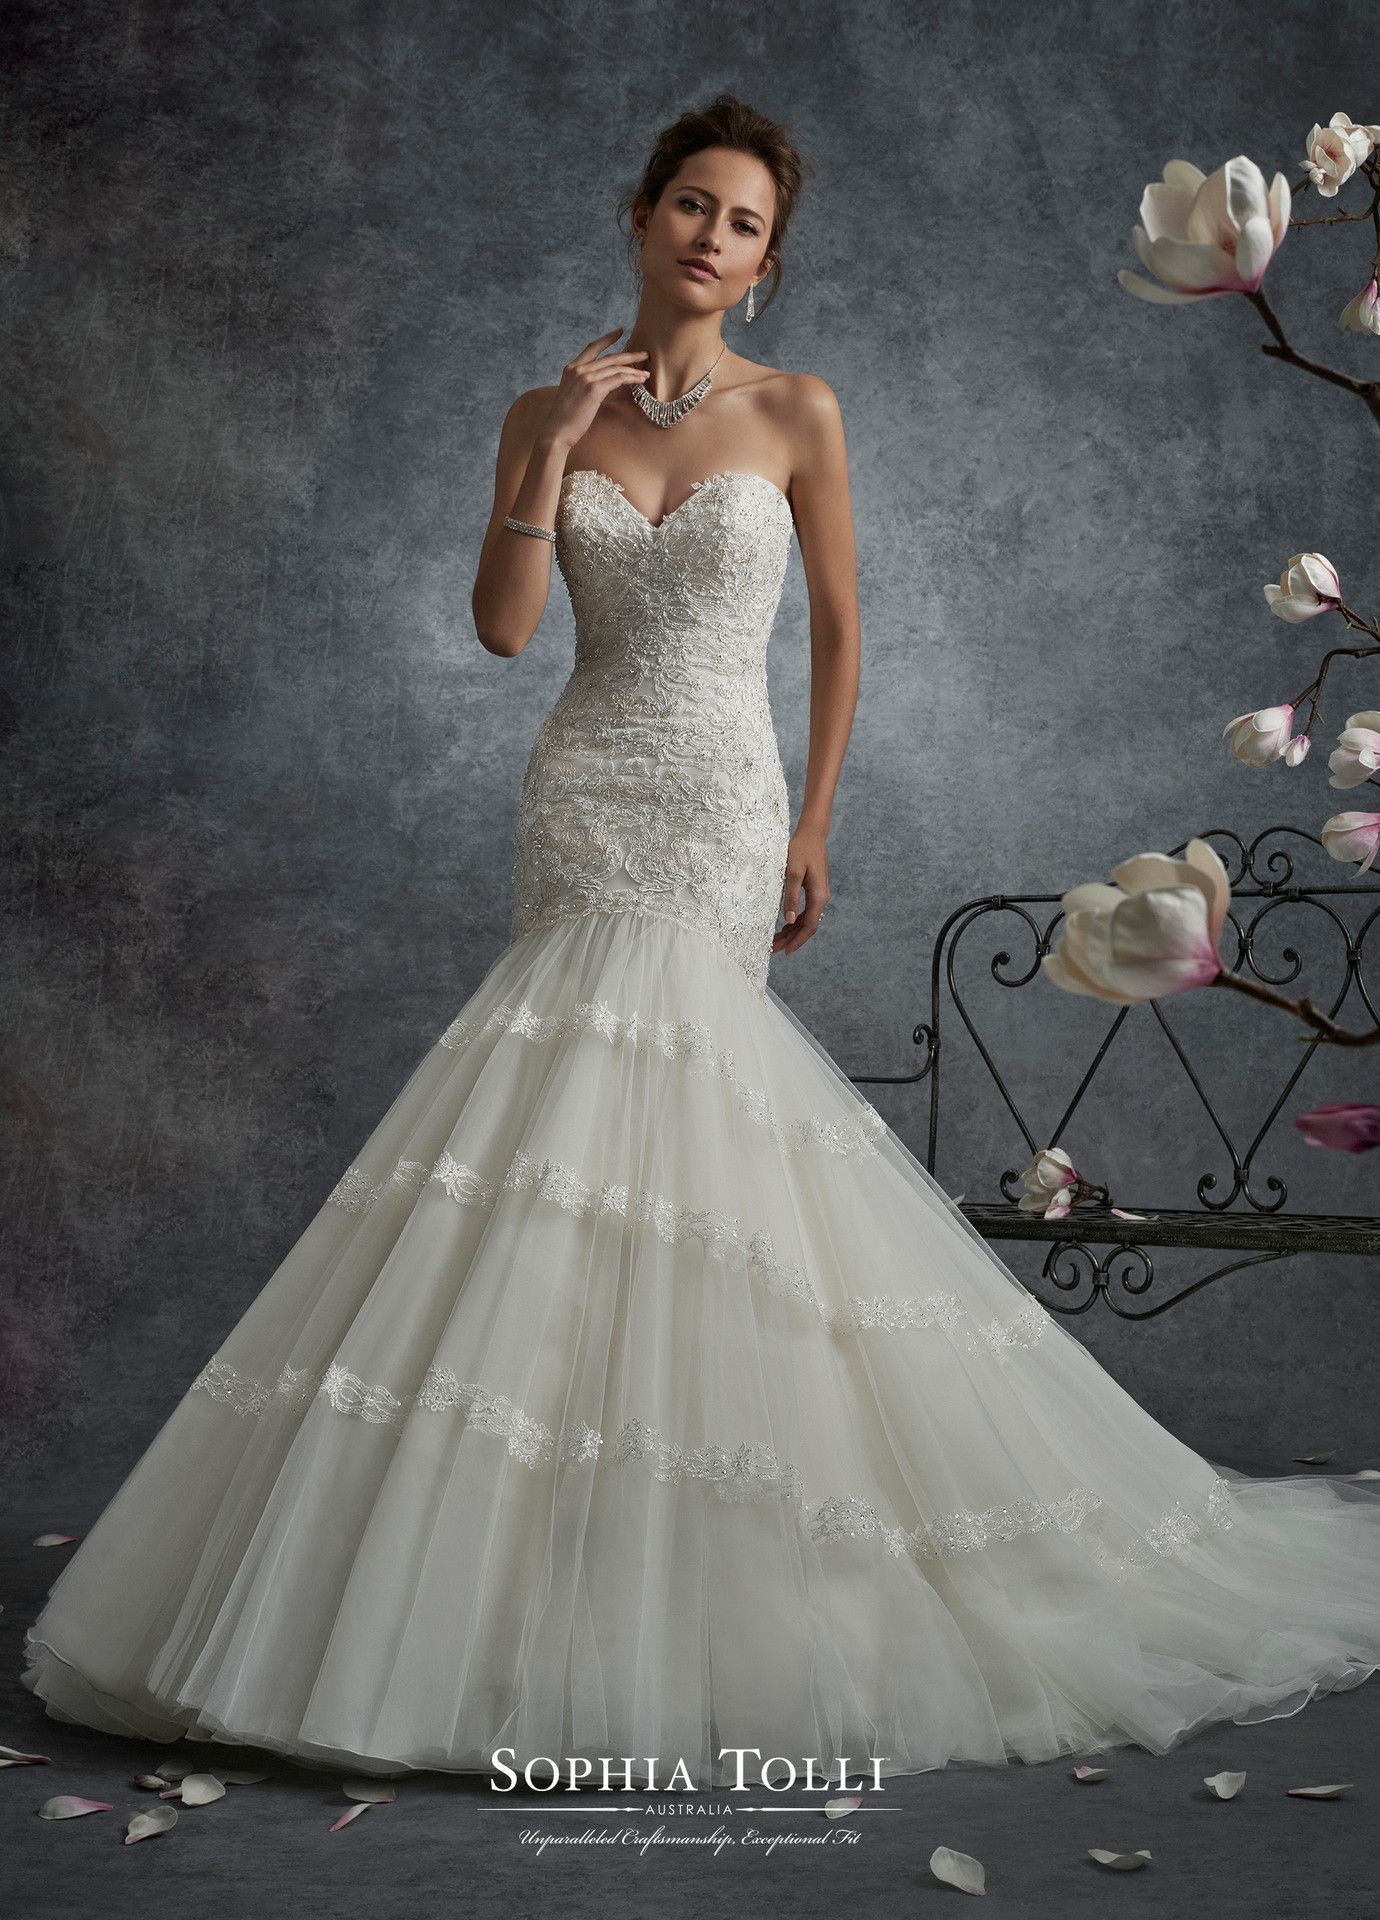 Sophia tolli y saturn all dressed up bridal gown products